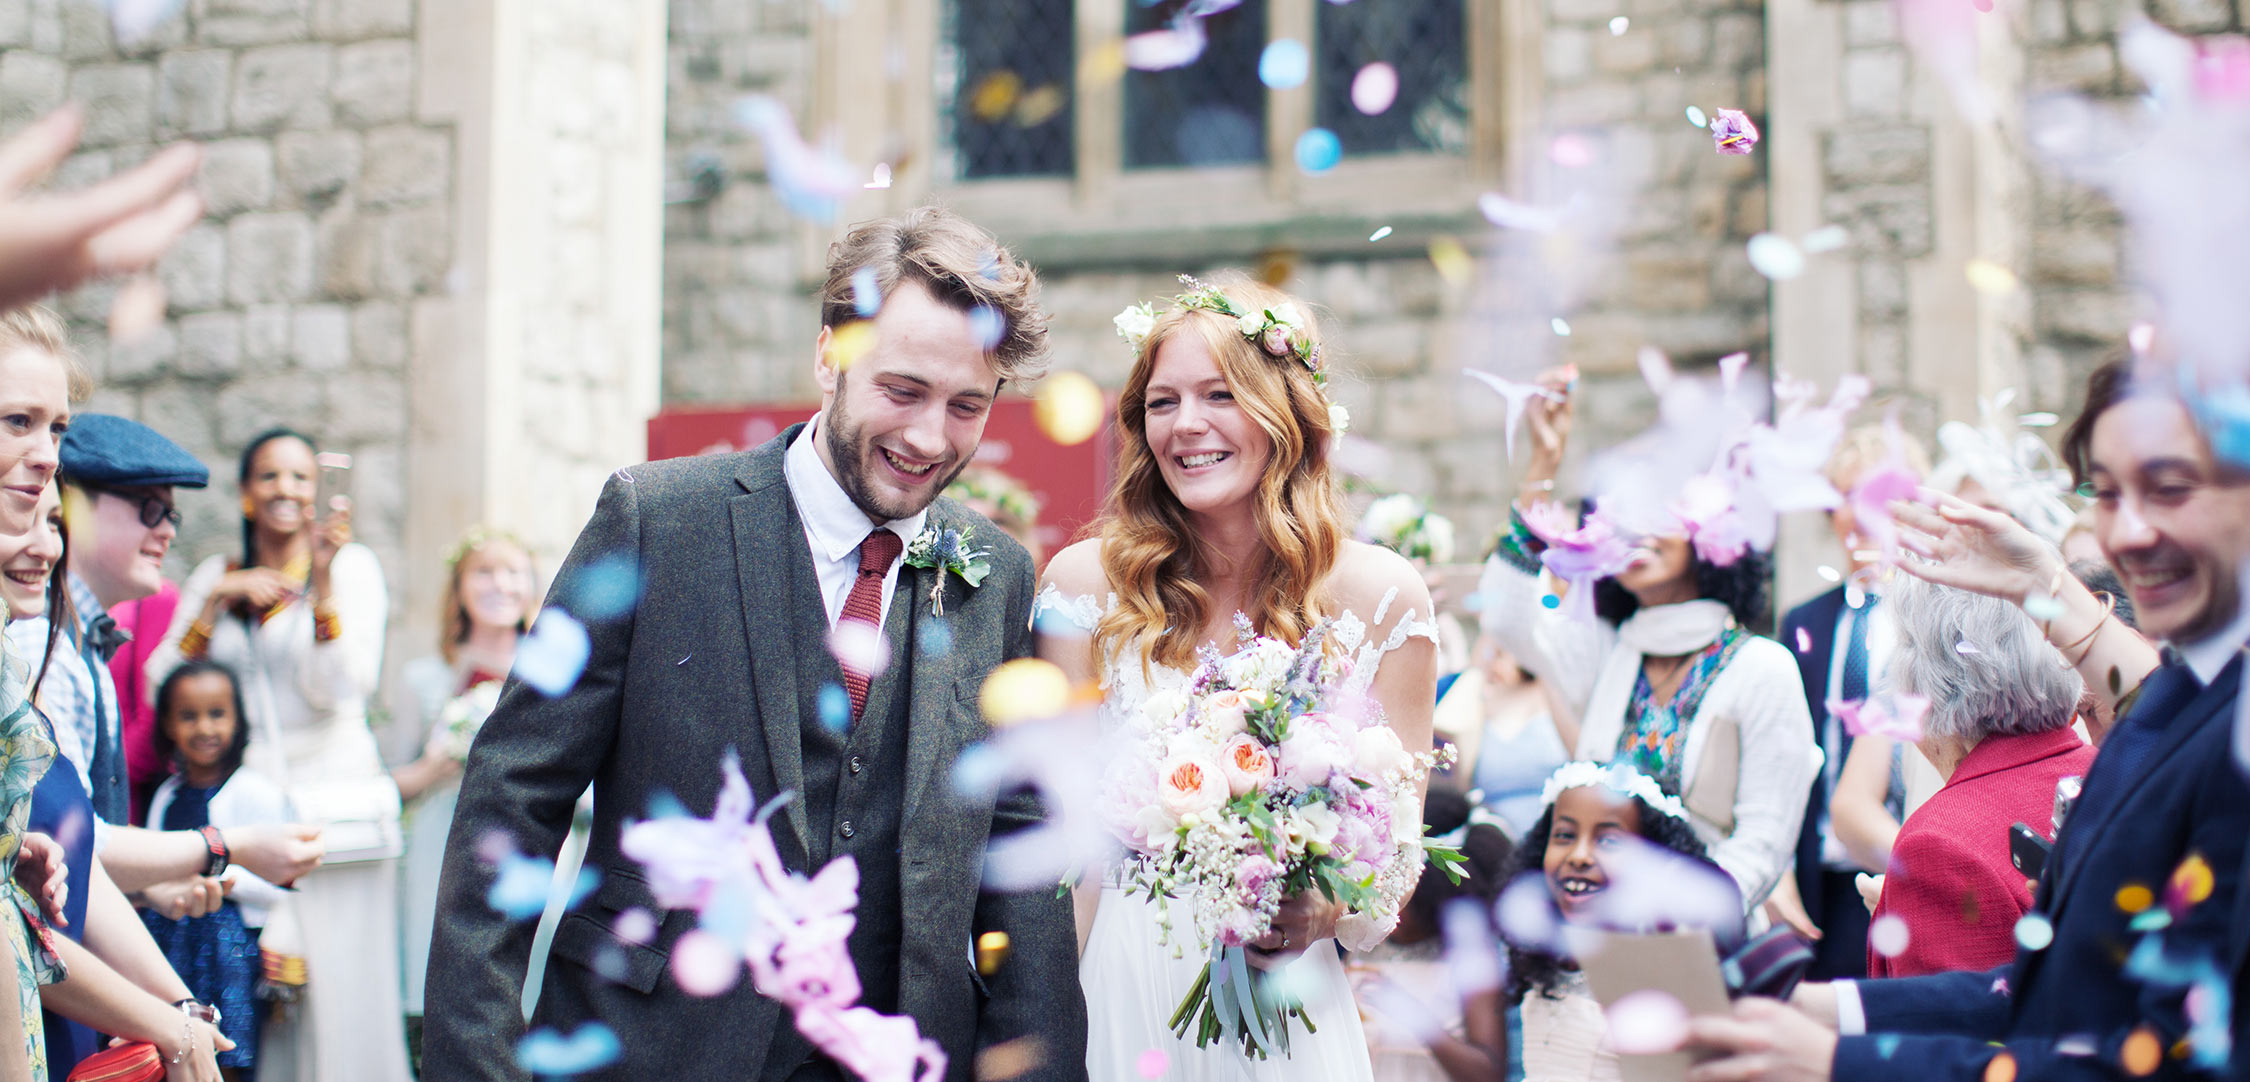 Beautiful natural wedding photography with a stunning bride and groom being showered with chunky confetti